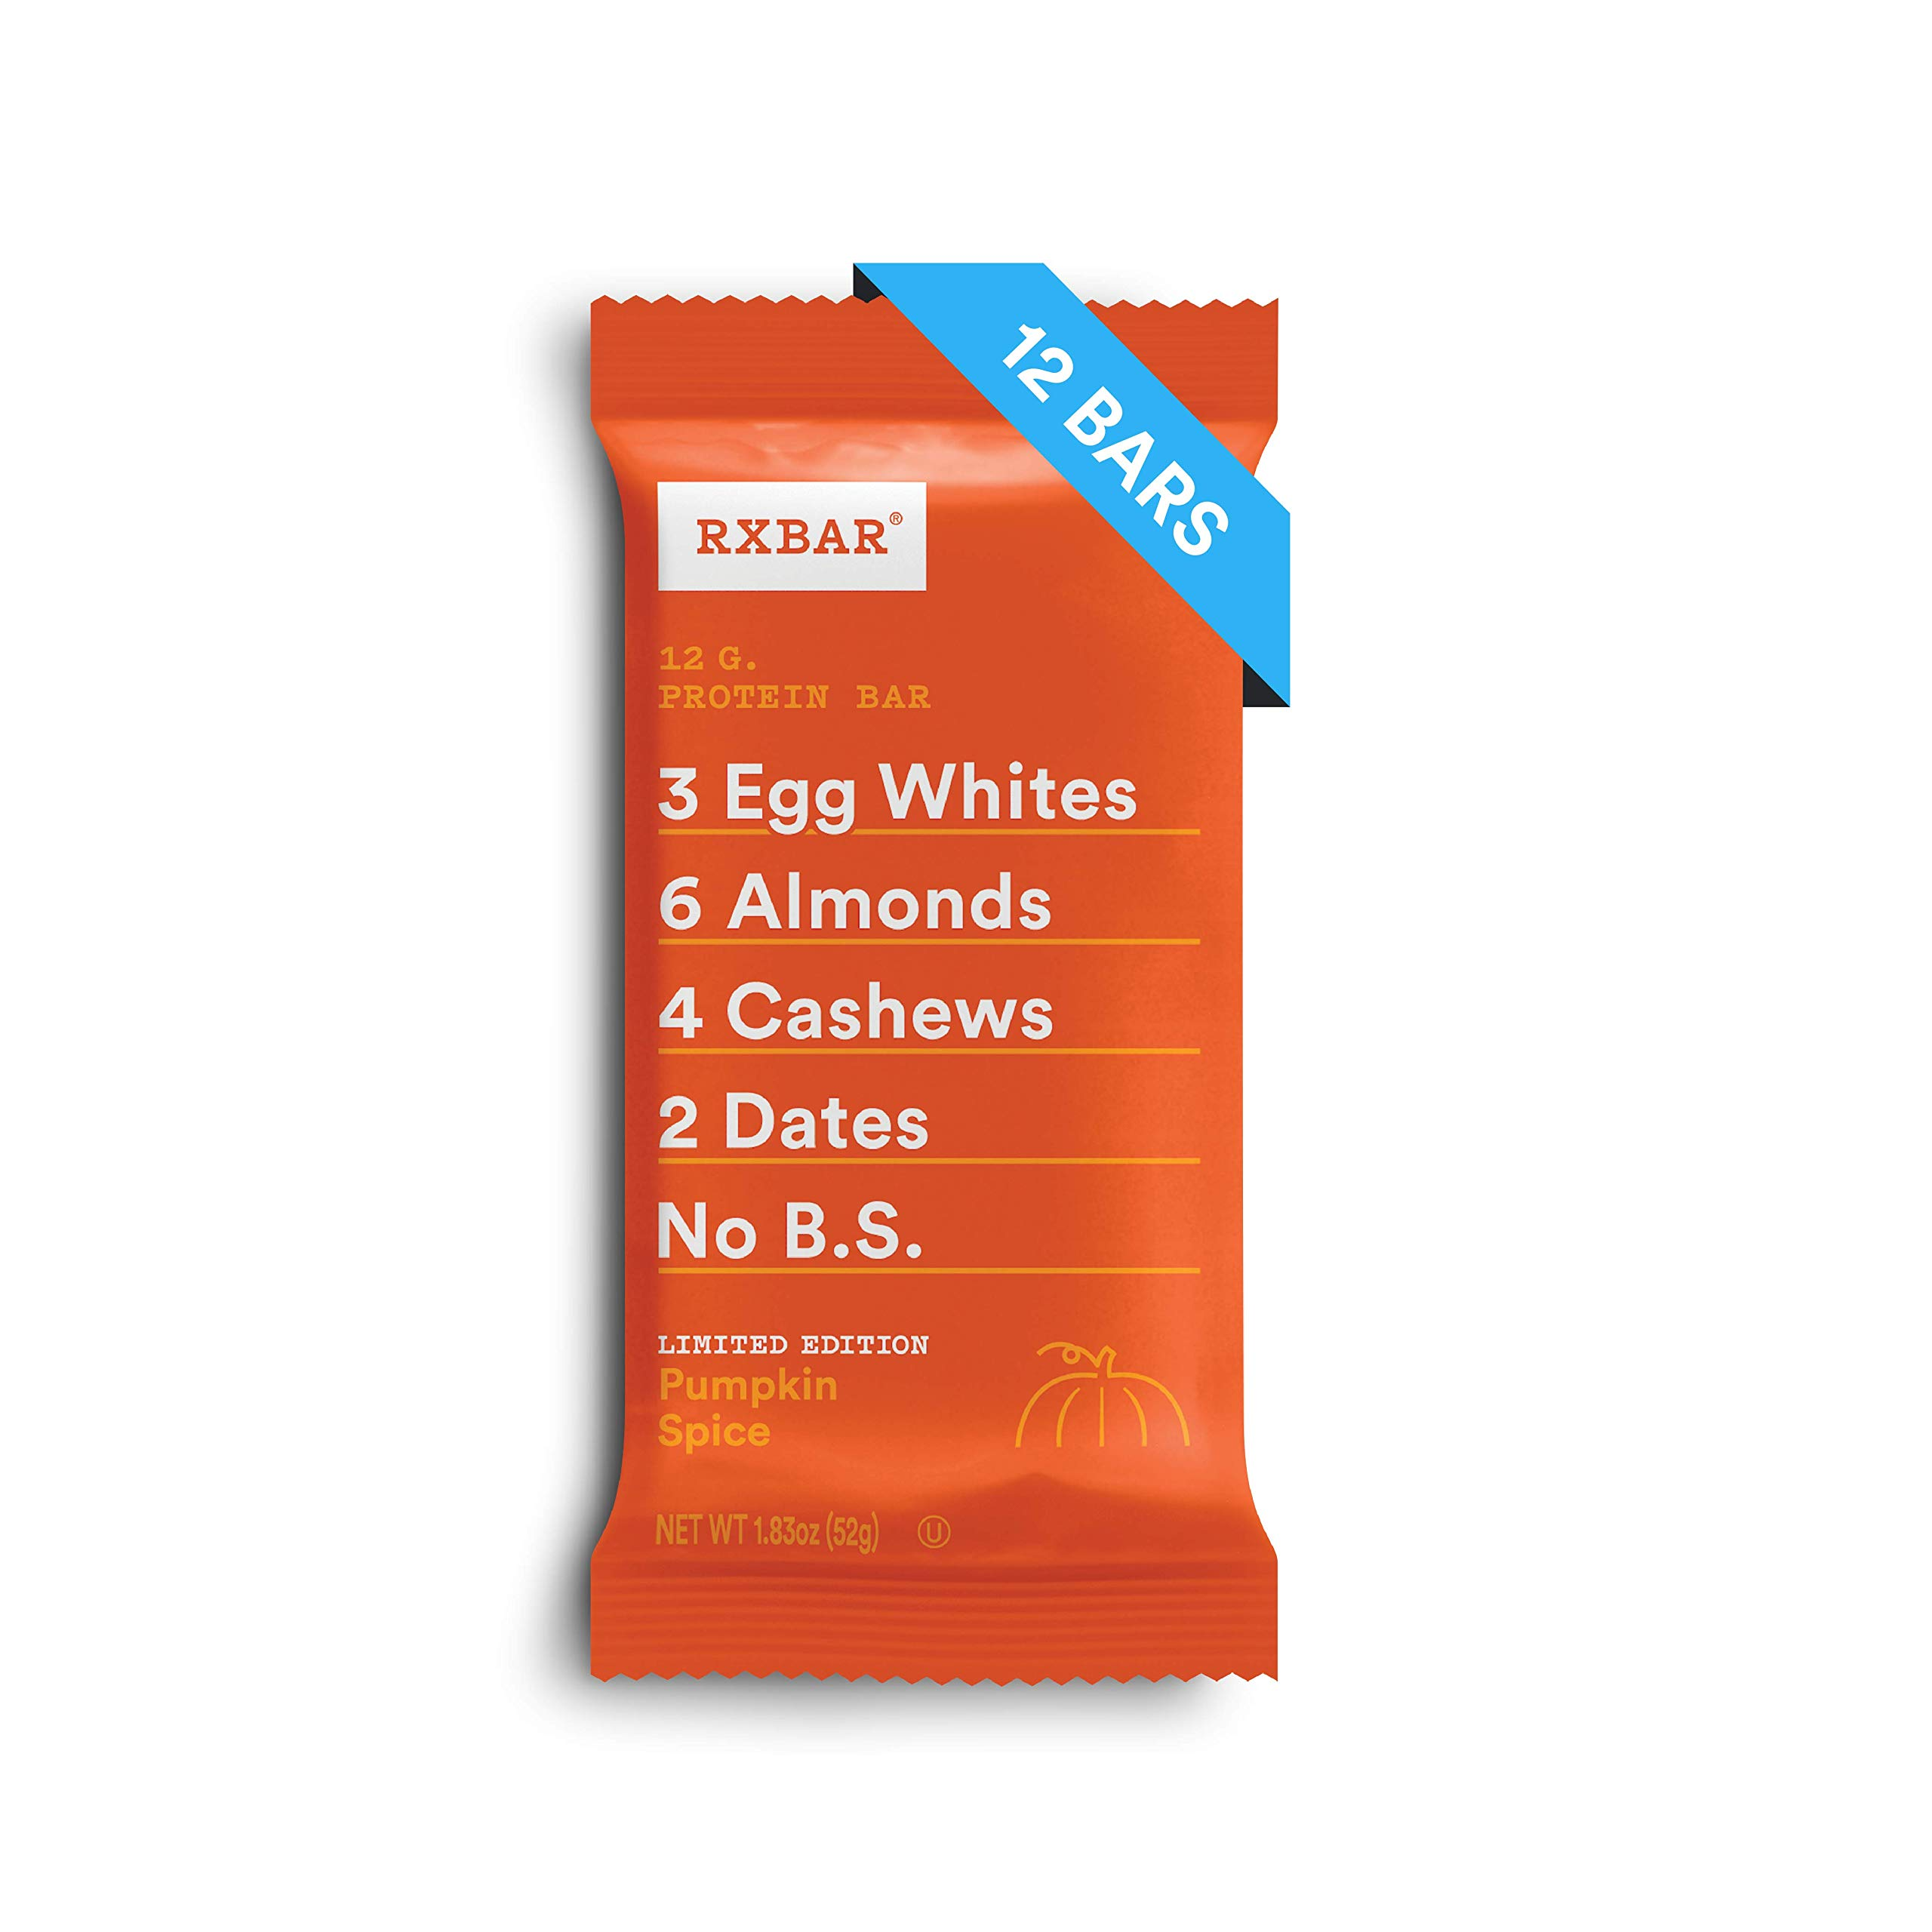 RXBAR, Pumpkin Spice, Protein Bar, Breakfast Bar, High Protein Snack, 1.83 Ounce, Pack of 12 by RXBAR